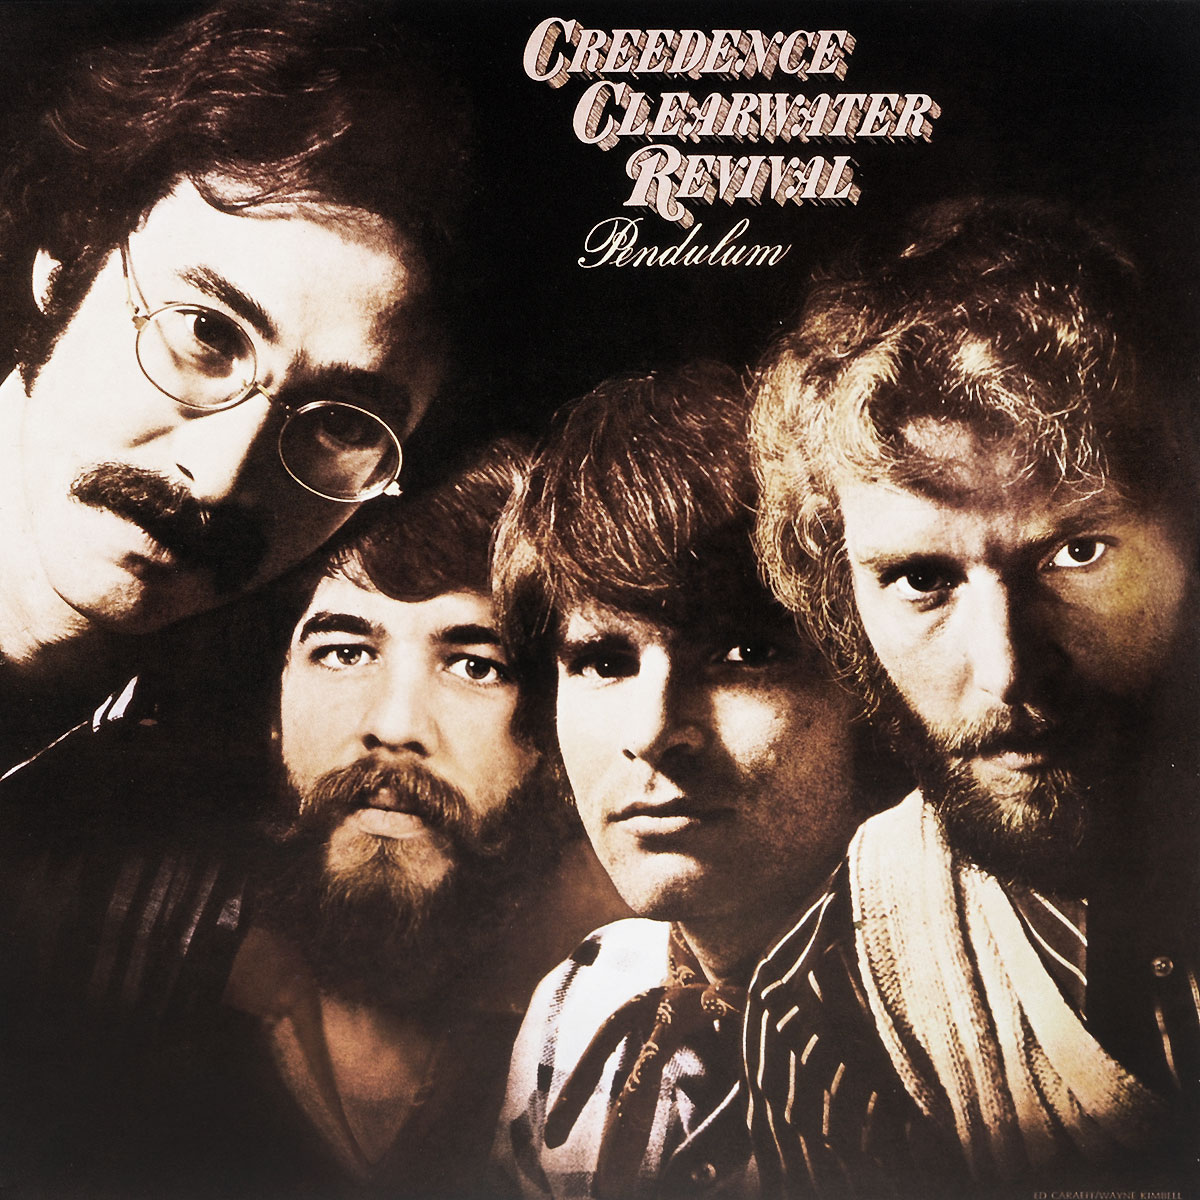 Creedence Clearwater Revival Creedence Clearwater Revival. Pendulum (LP) king s revival